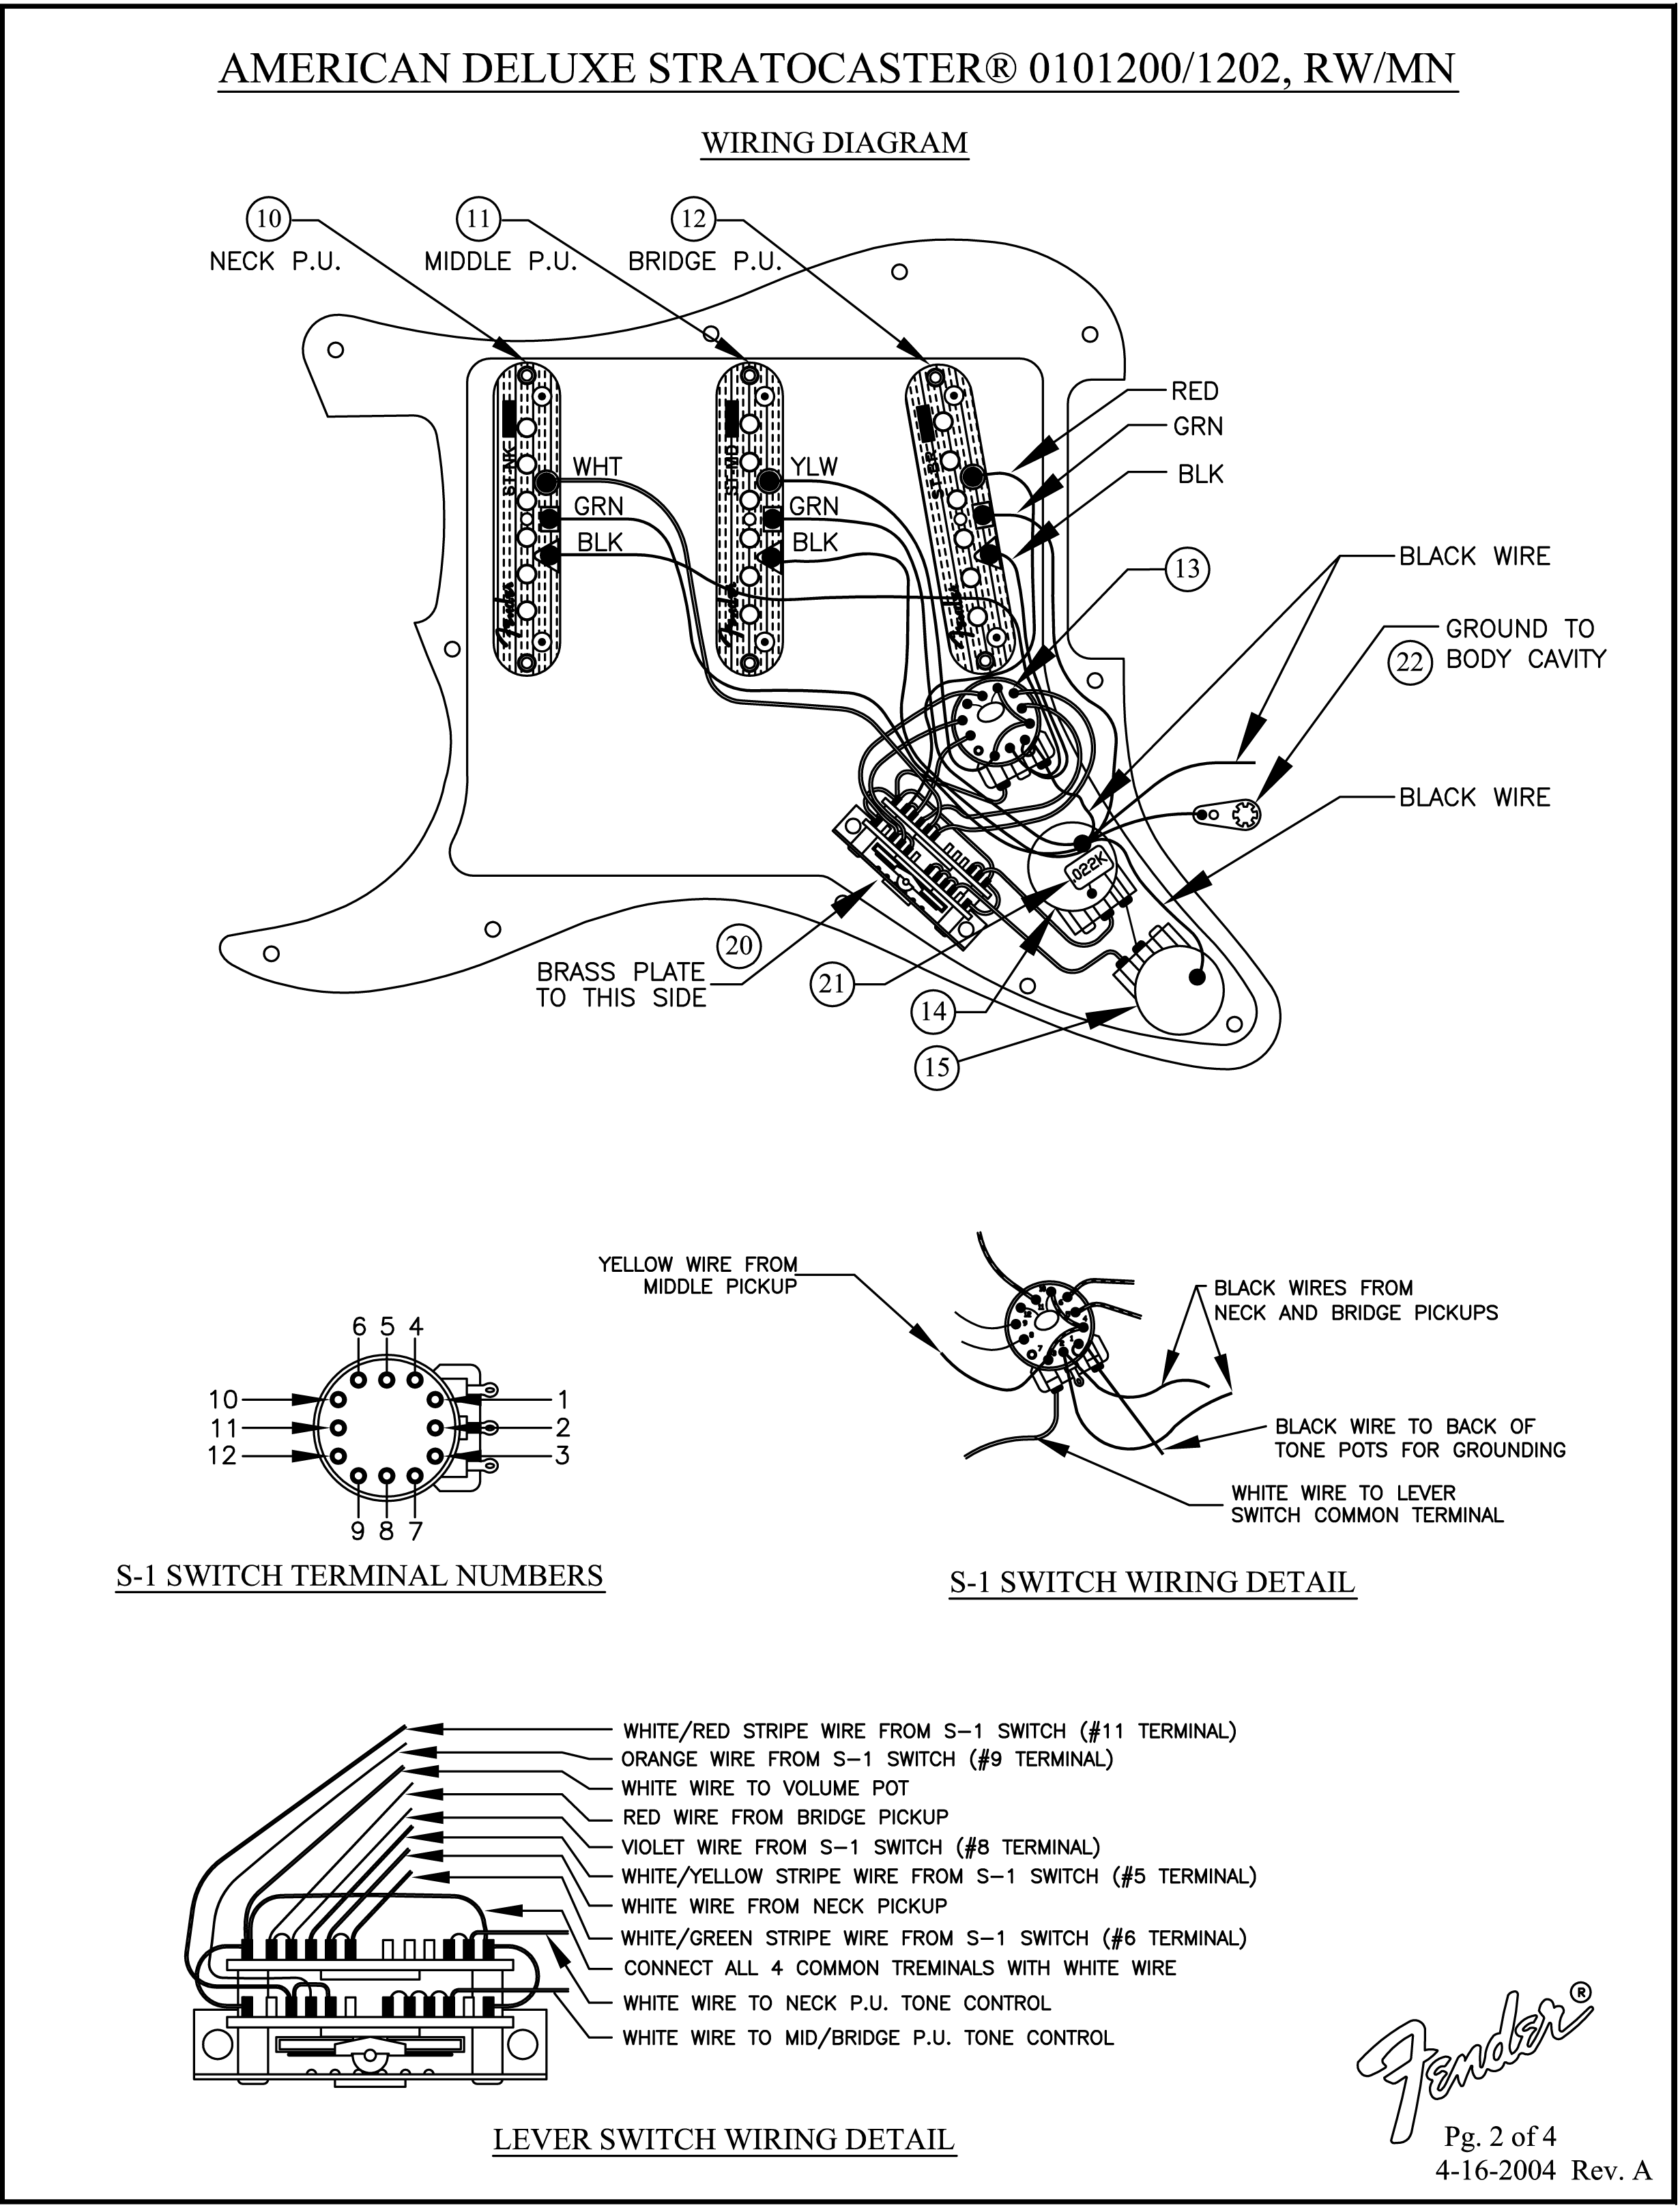 Fender American Deluxe Stratocaster 2009 wiring diagram in ... on fender guitar wiring diagrams, fender s1 switch schematics, mexican strat wiring diagram, fender stratocaster wiring-diagram, fender strat s1 diagram, fat strat wiring diagram, fender fat strat schematic, american deluxe strat wiring diagram, fender strat ultra wiring-diagram, fender stratocaster pickup wiring,